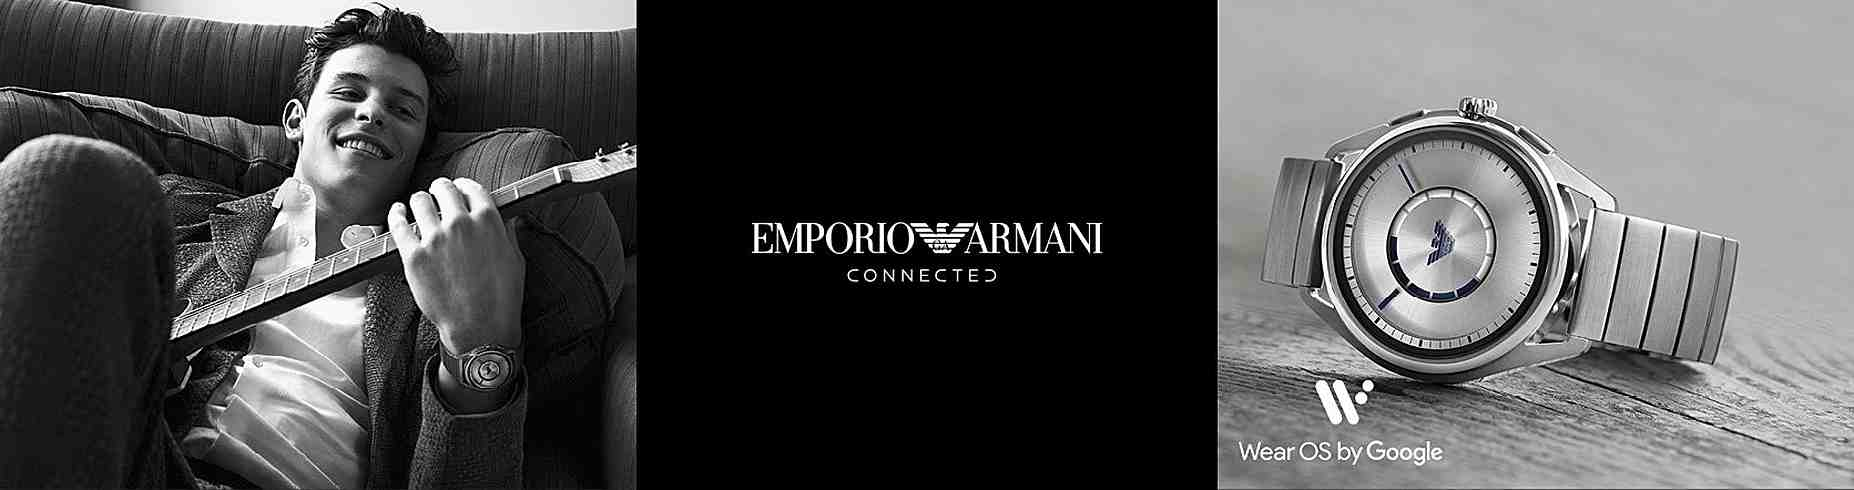 emporio armani connected online kaufen otto. Black Bedroom Furniture Sets. Home Design Ideas